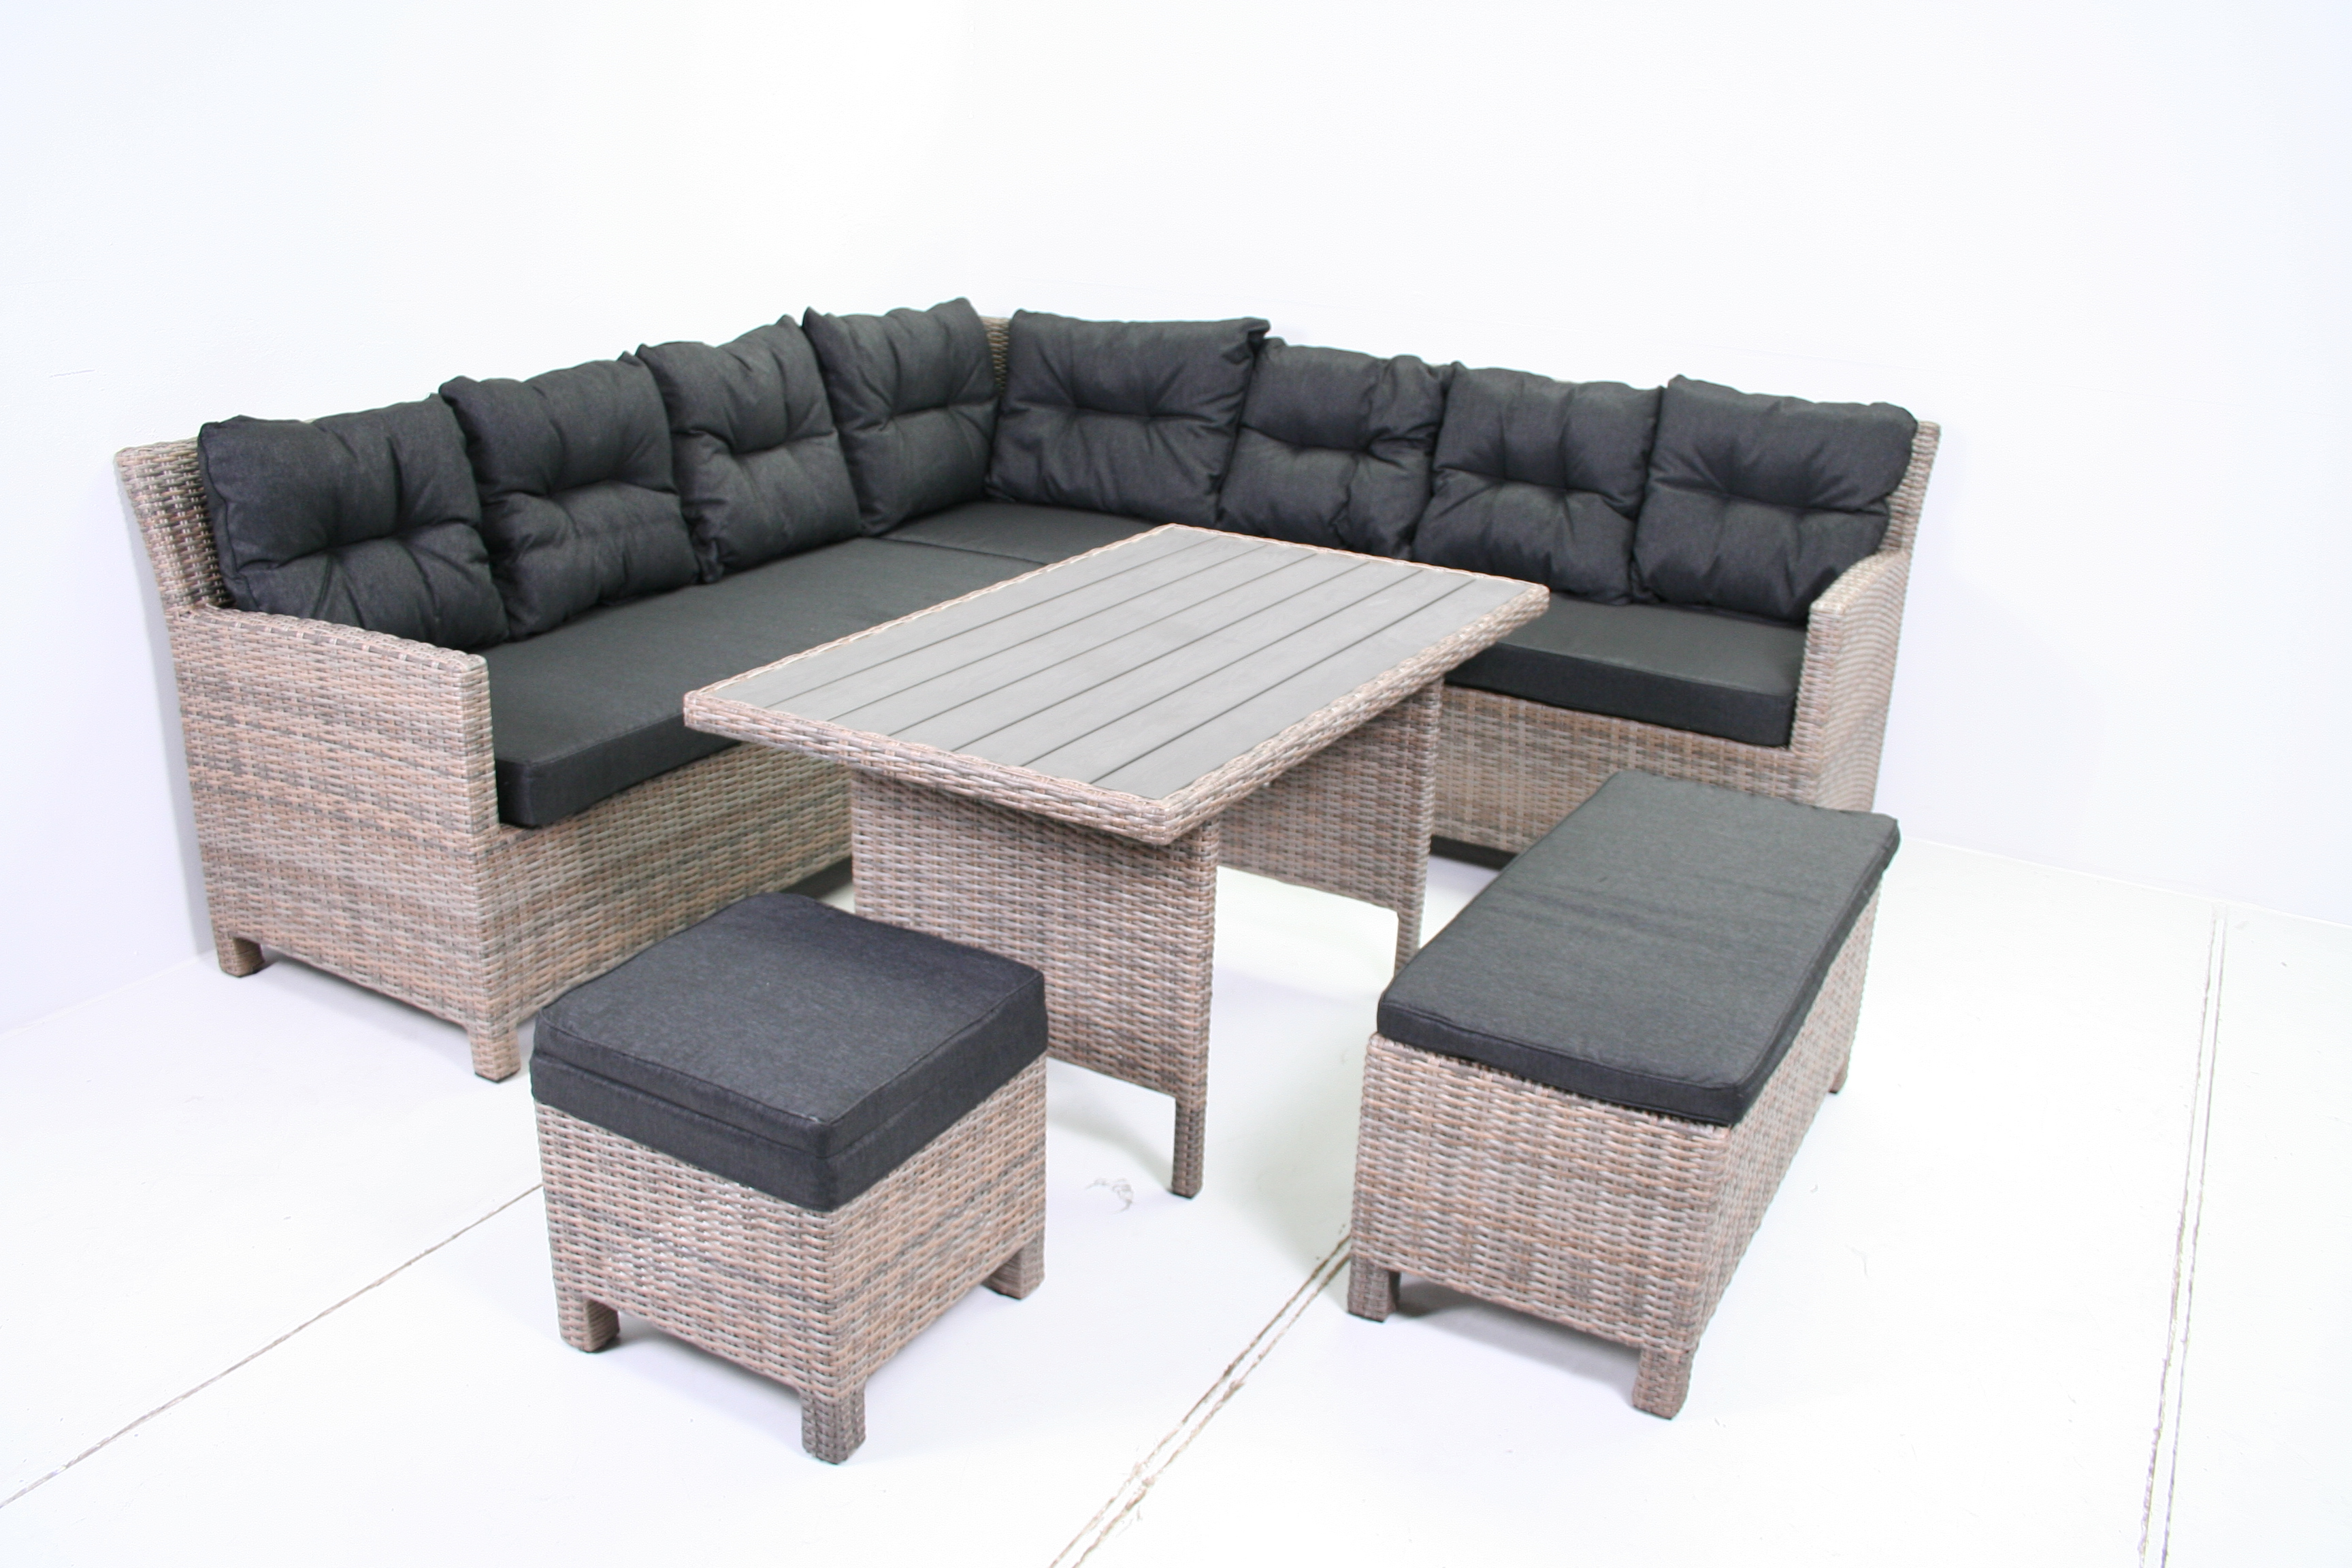 Sens line garden furniture